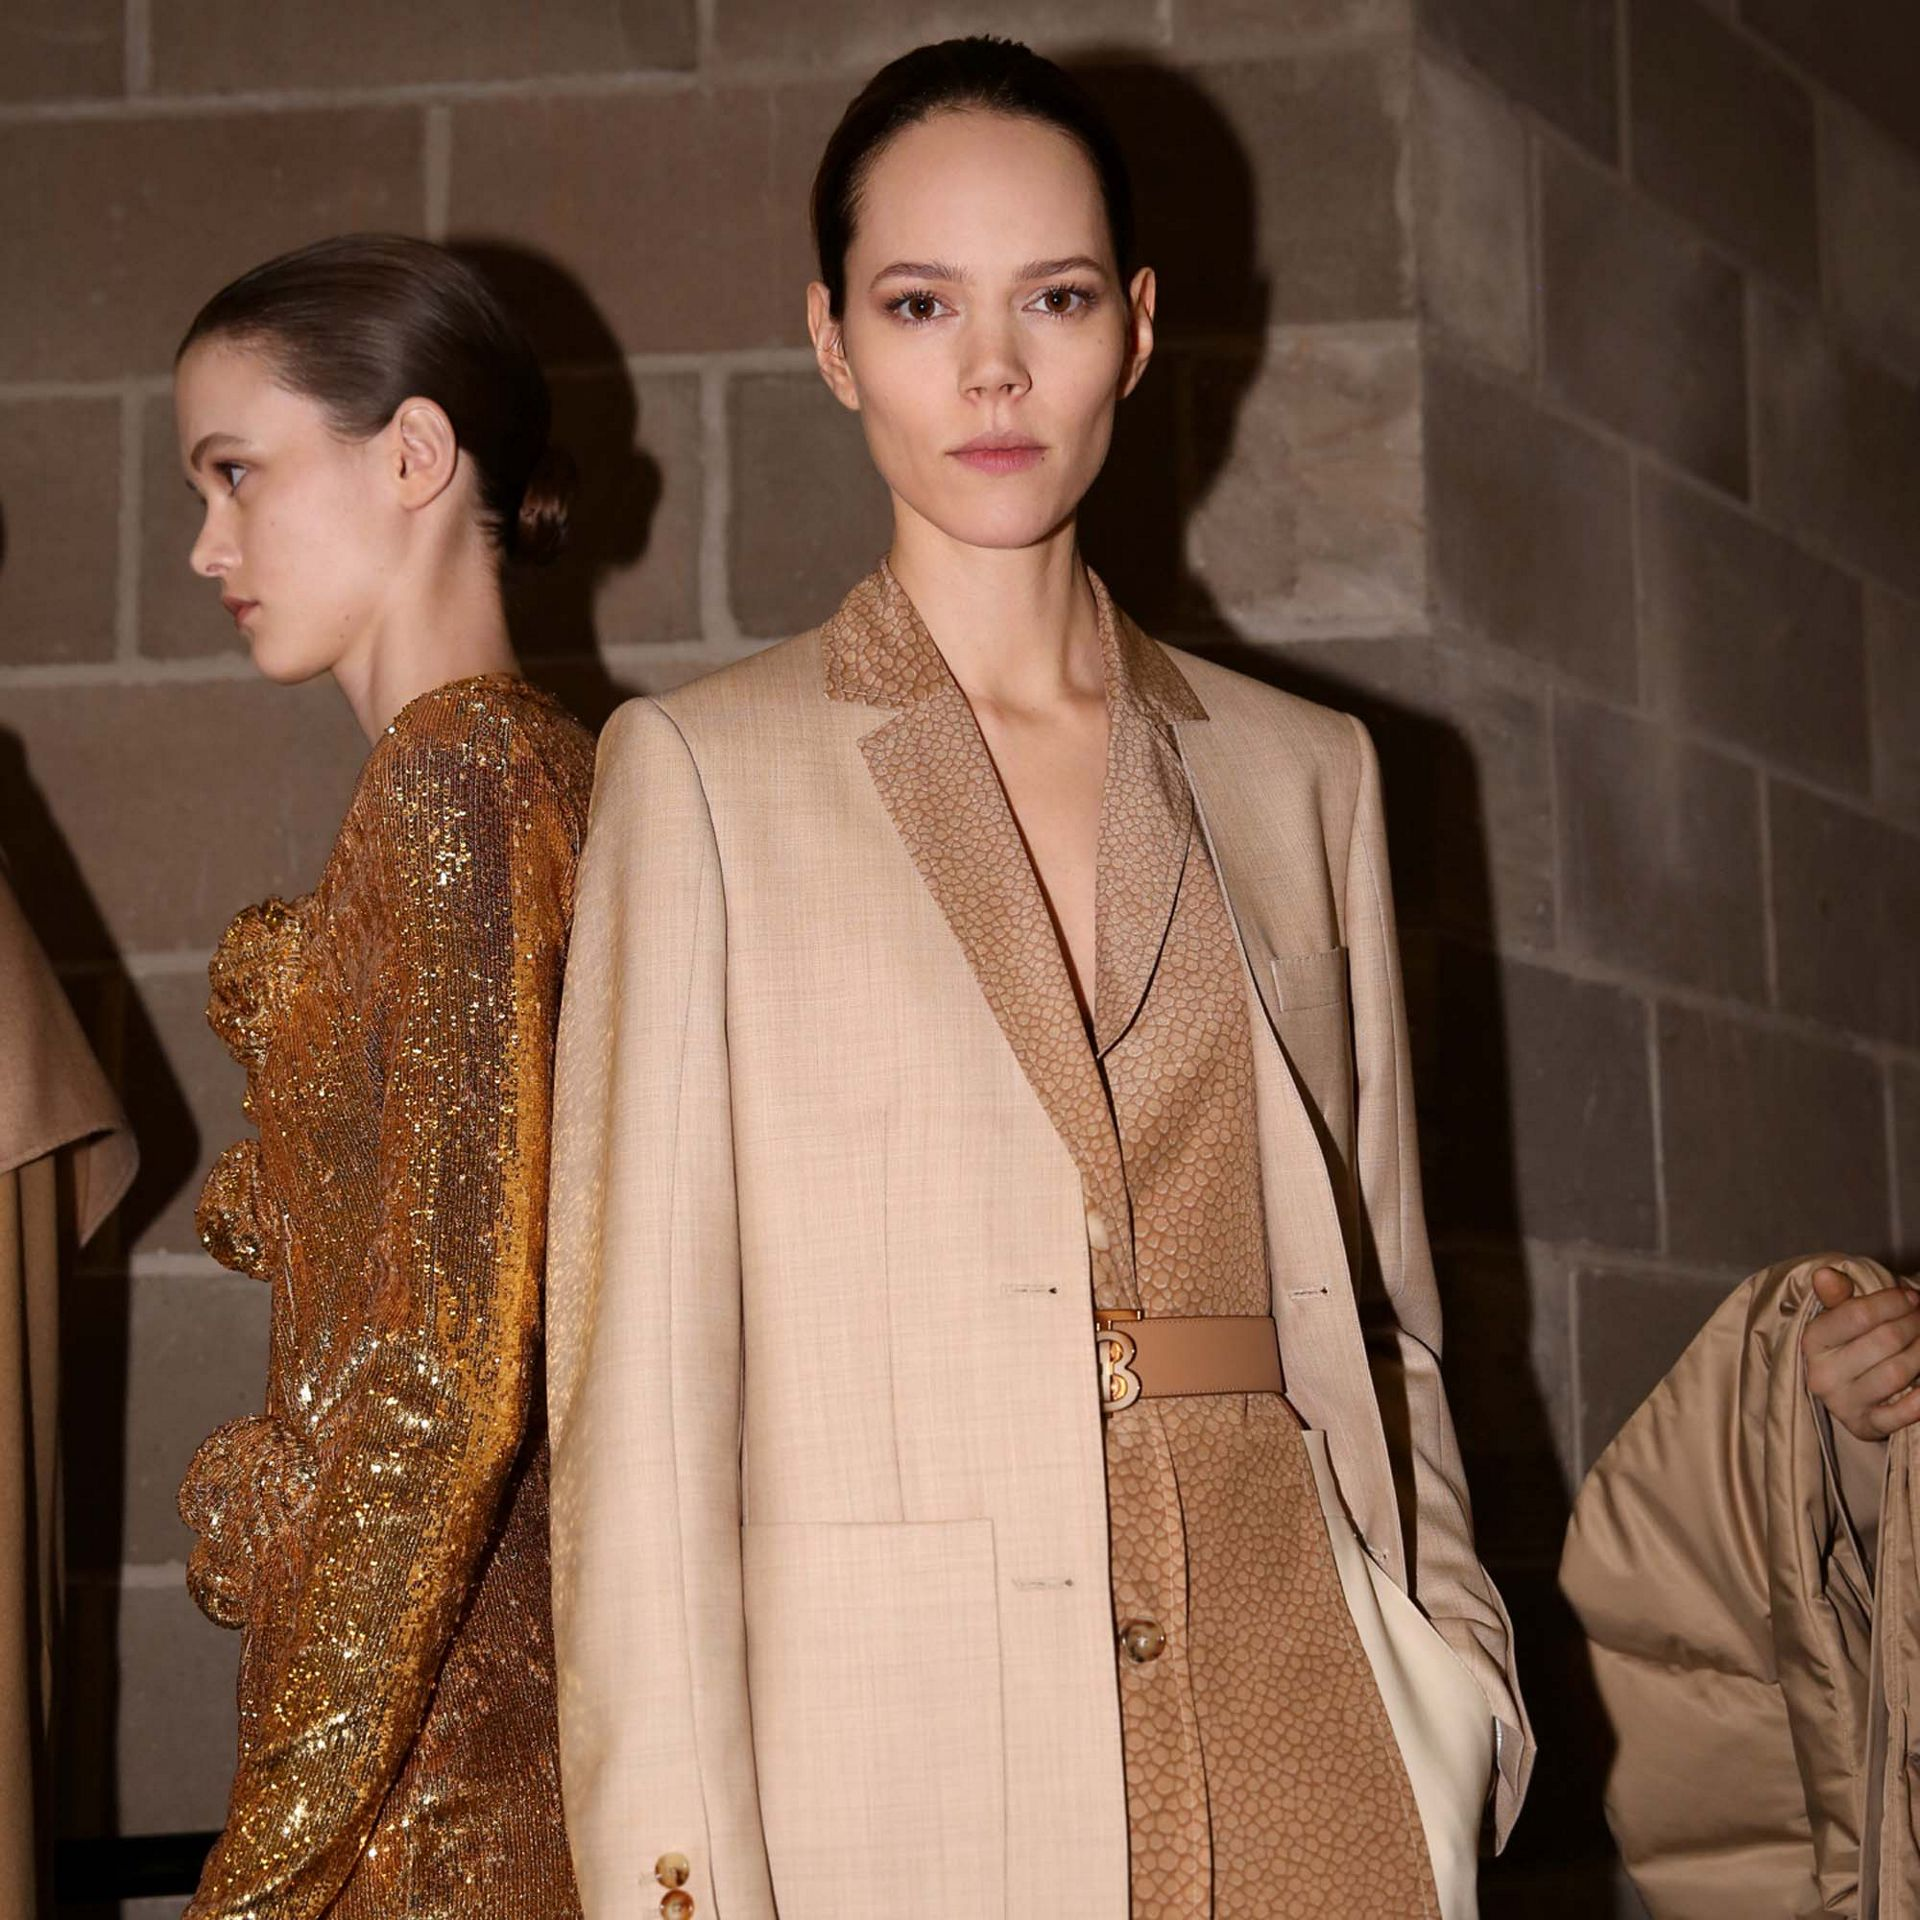 Fish-scale Print Bib Detail Wool Tailored Jacket in Ecru - Women | Burberry Singapore - gallery image 7